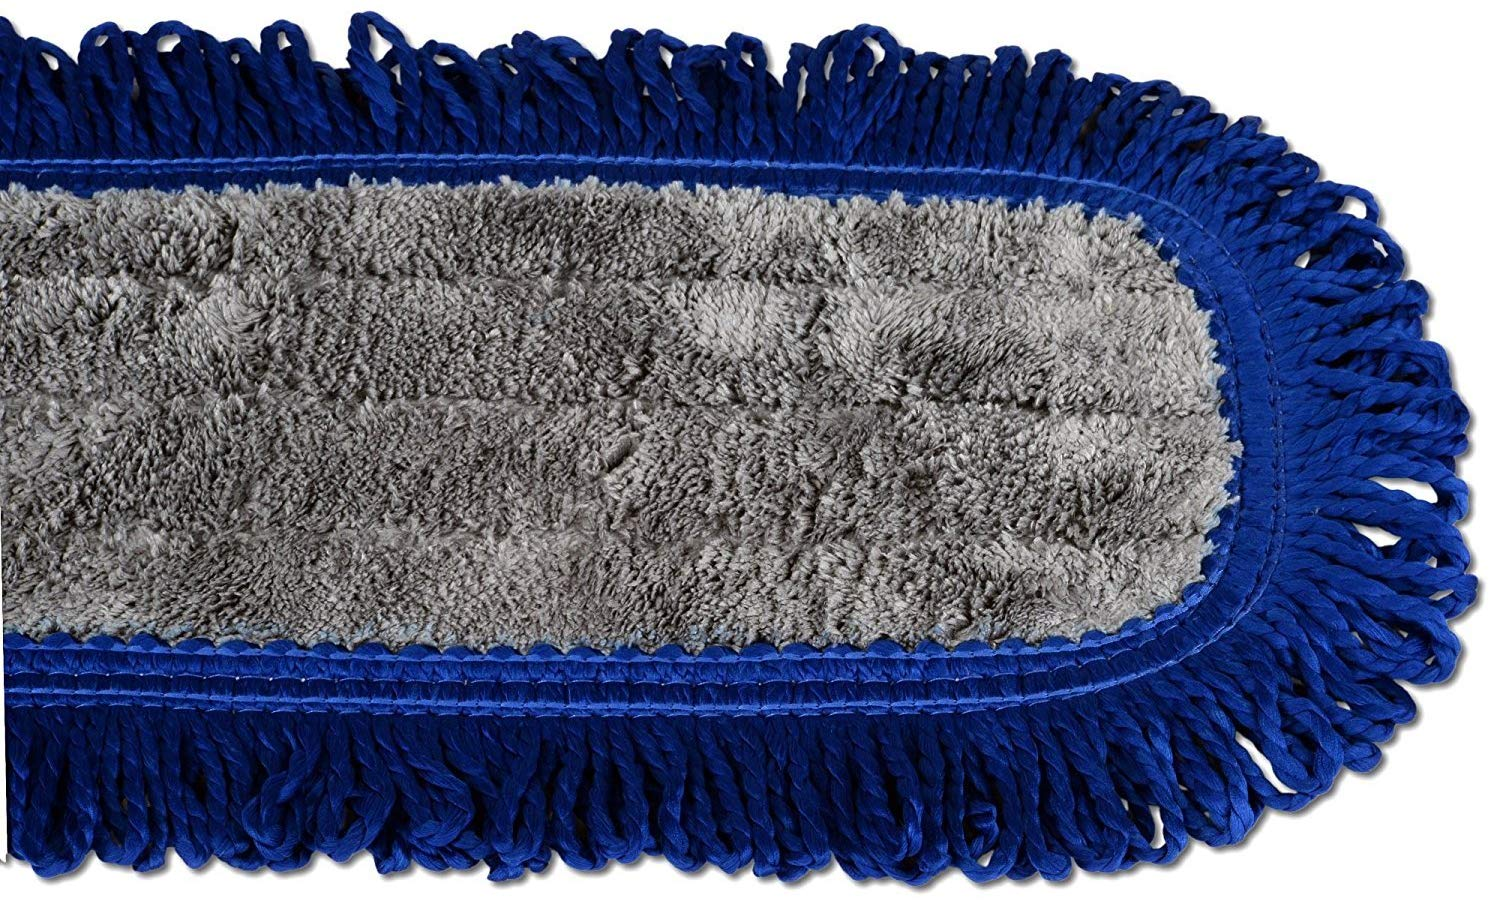 24 inch Microfiber Dust Mop Pads 2 Pack